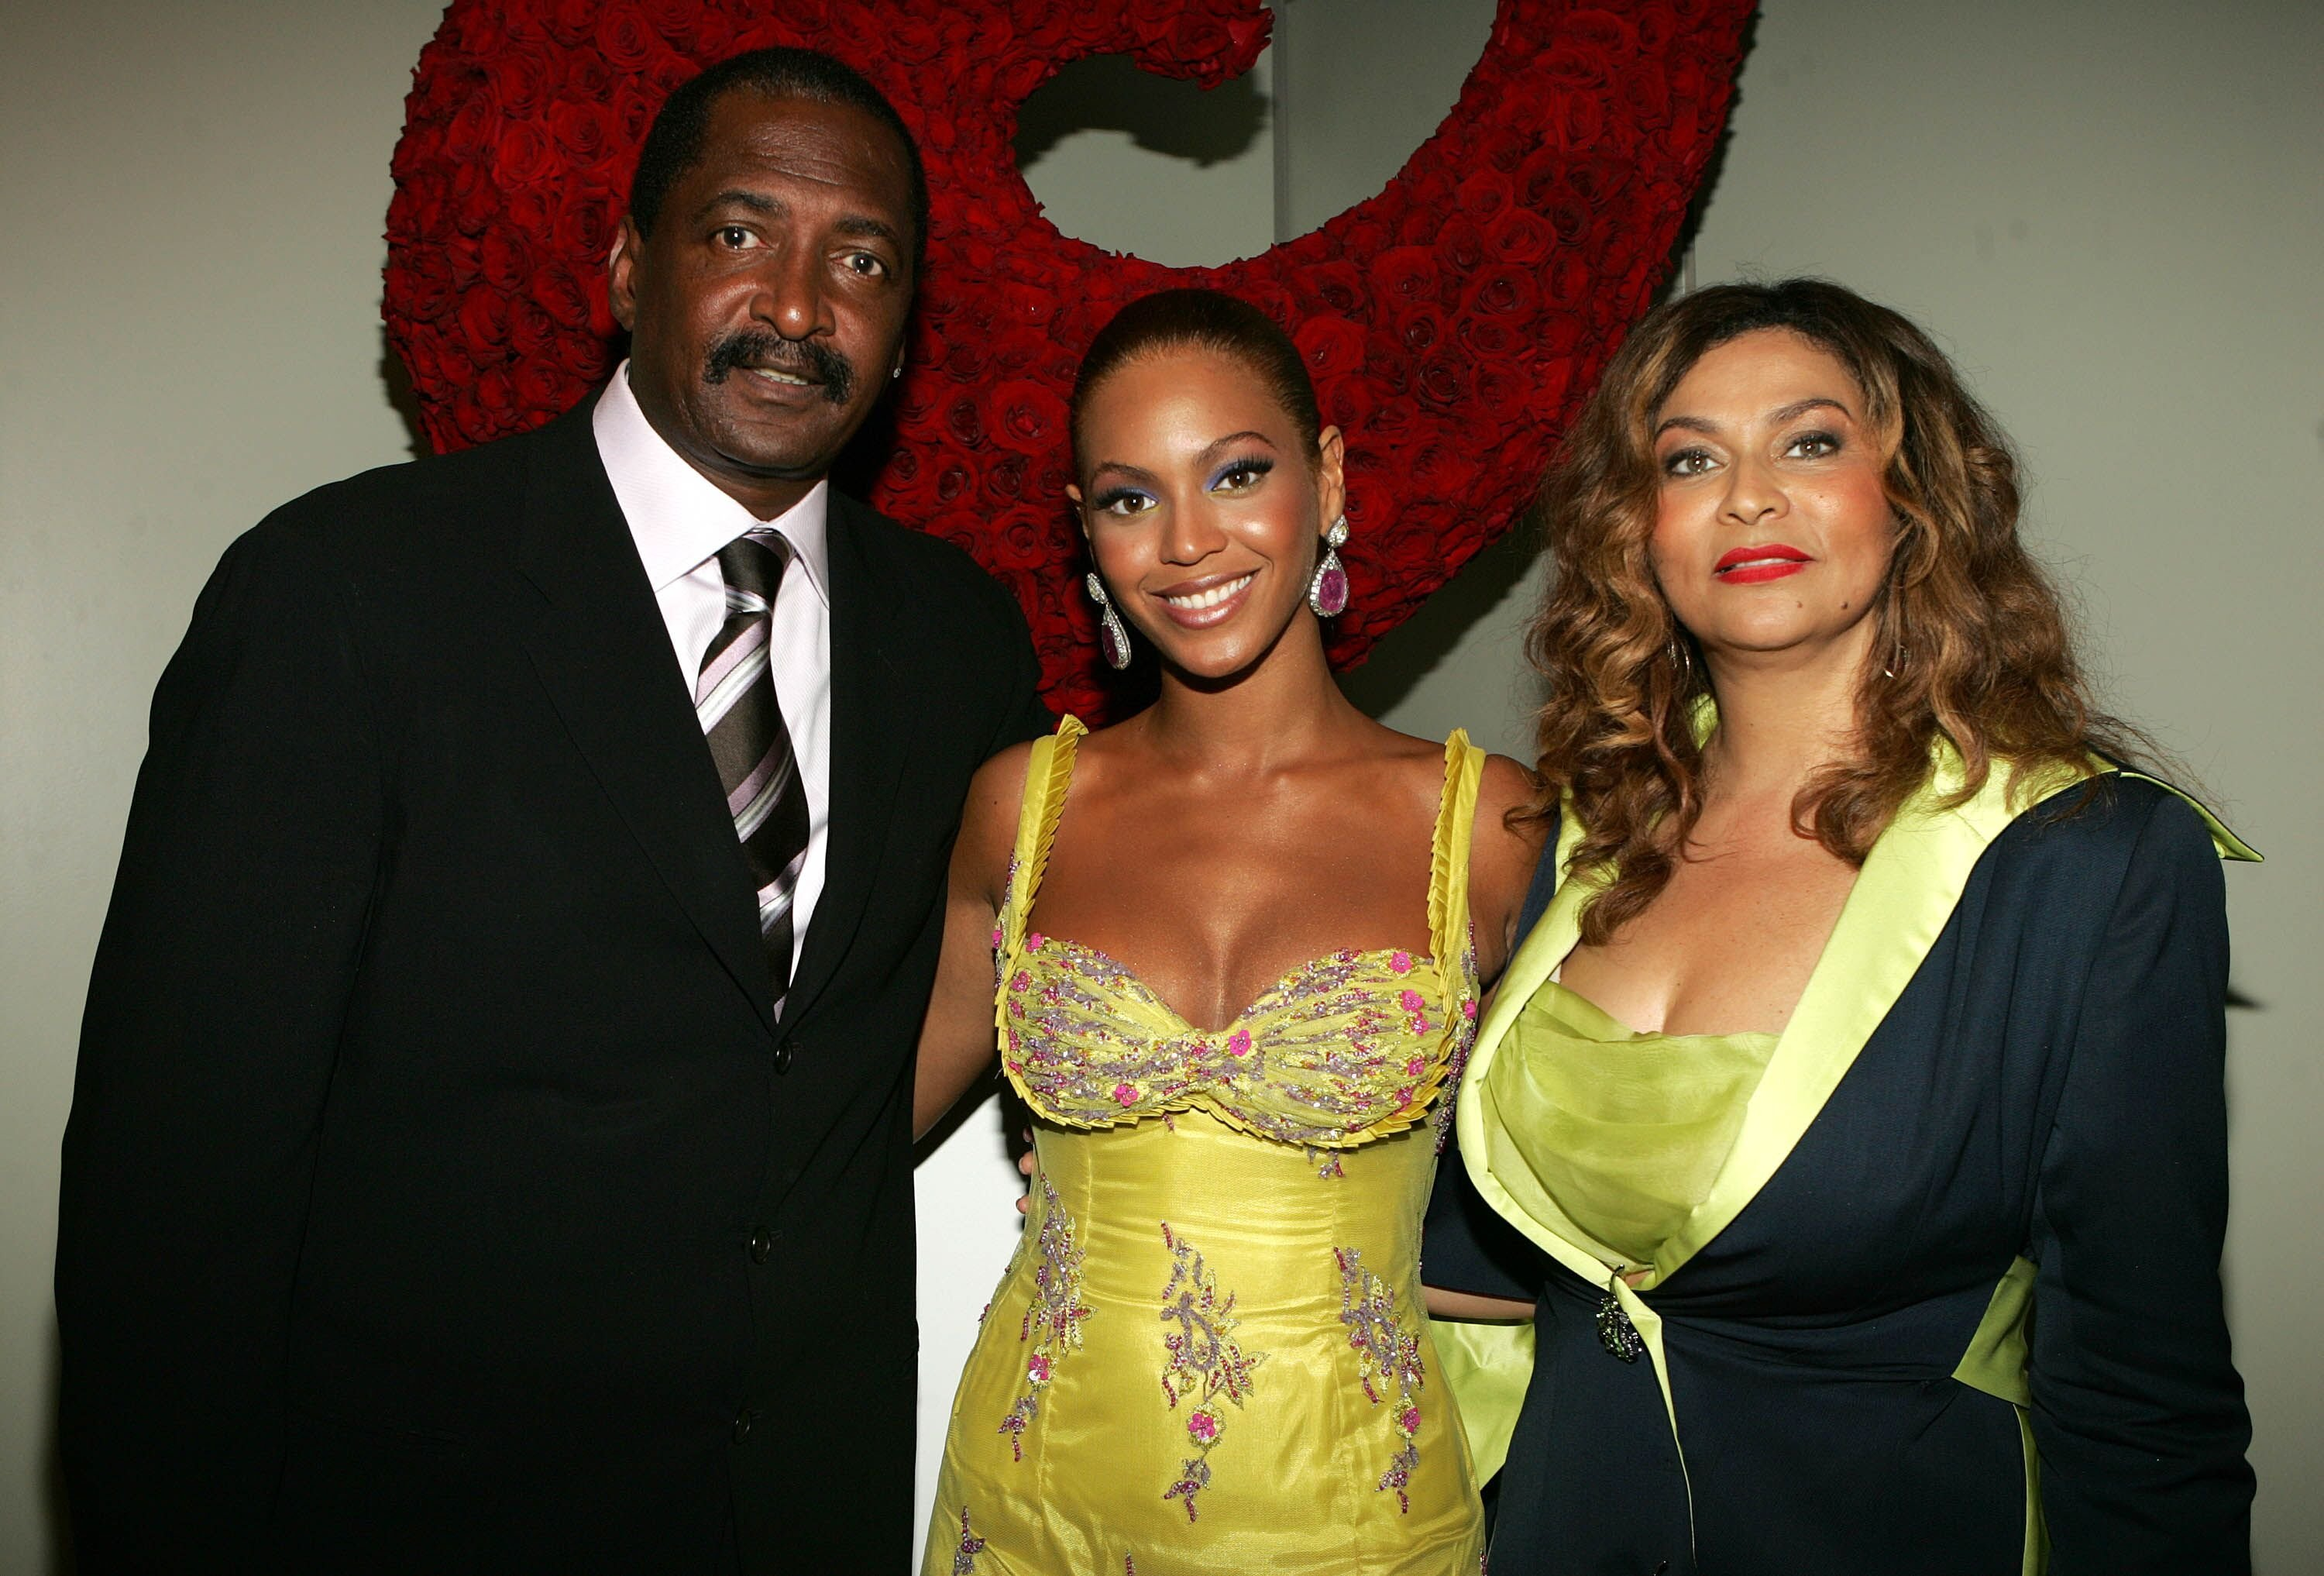 Mathew Knowles with daughter Beyonce and ex-wife Tina Knowles-Lawson | Source: Getty Images/GlobalImagesUkraine